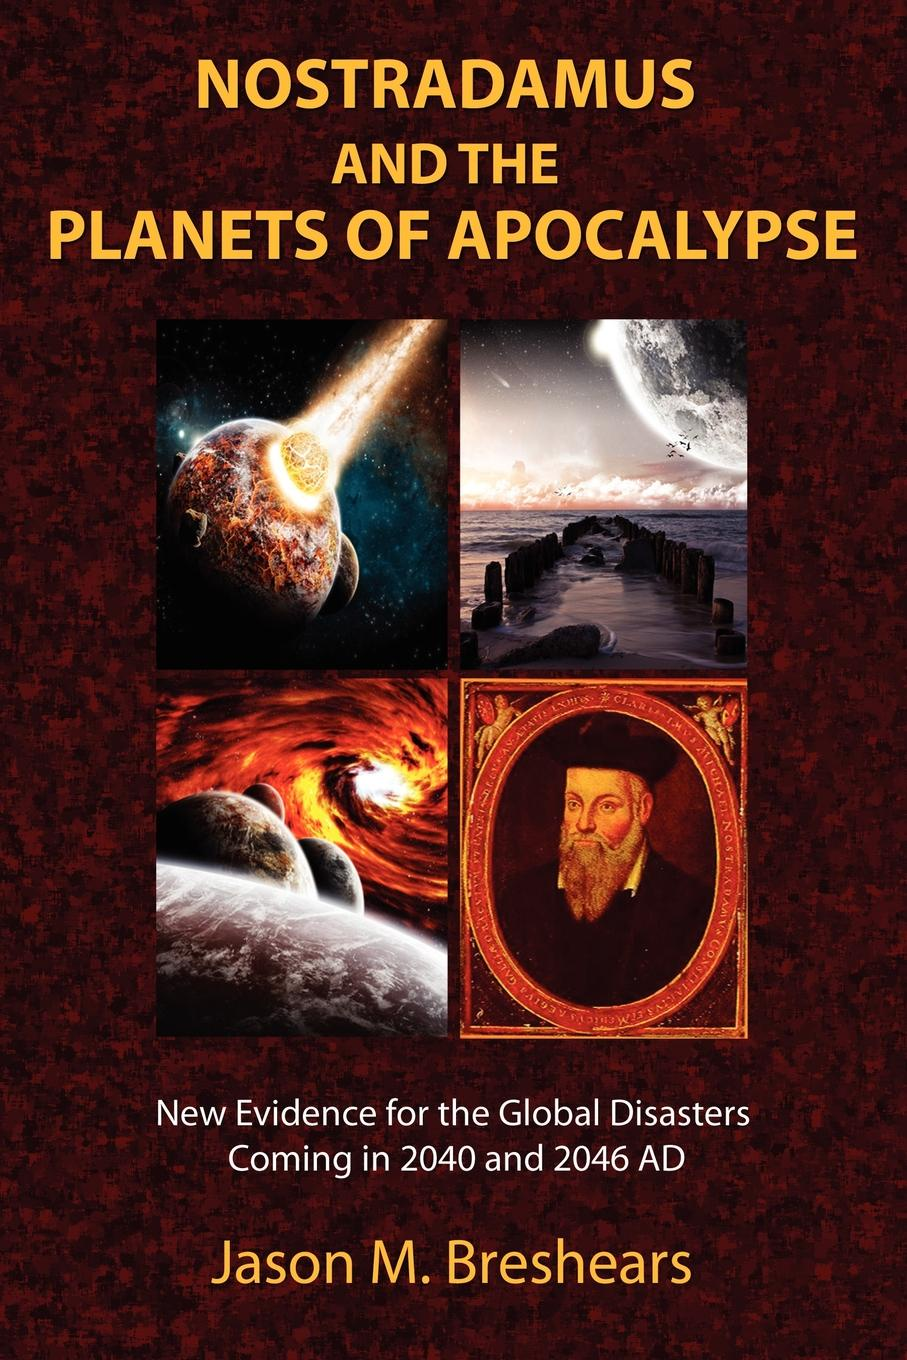 Jason M. Breshears Nostradamus and the Planets of Apocalypse. New Evidence for the Global Disasters Coming in 2040 and 2046 AD malcolm kemp extreme events robust portfolio construction in the presence of fat tails isbn 9780470976791